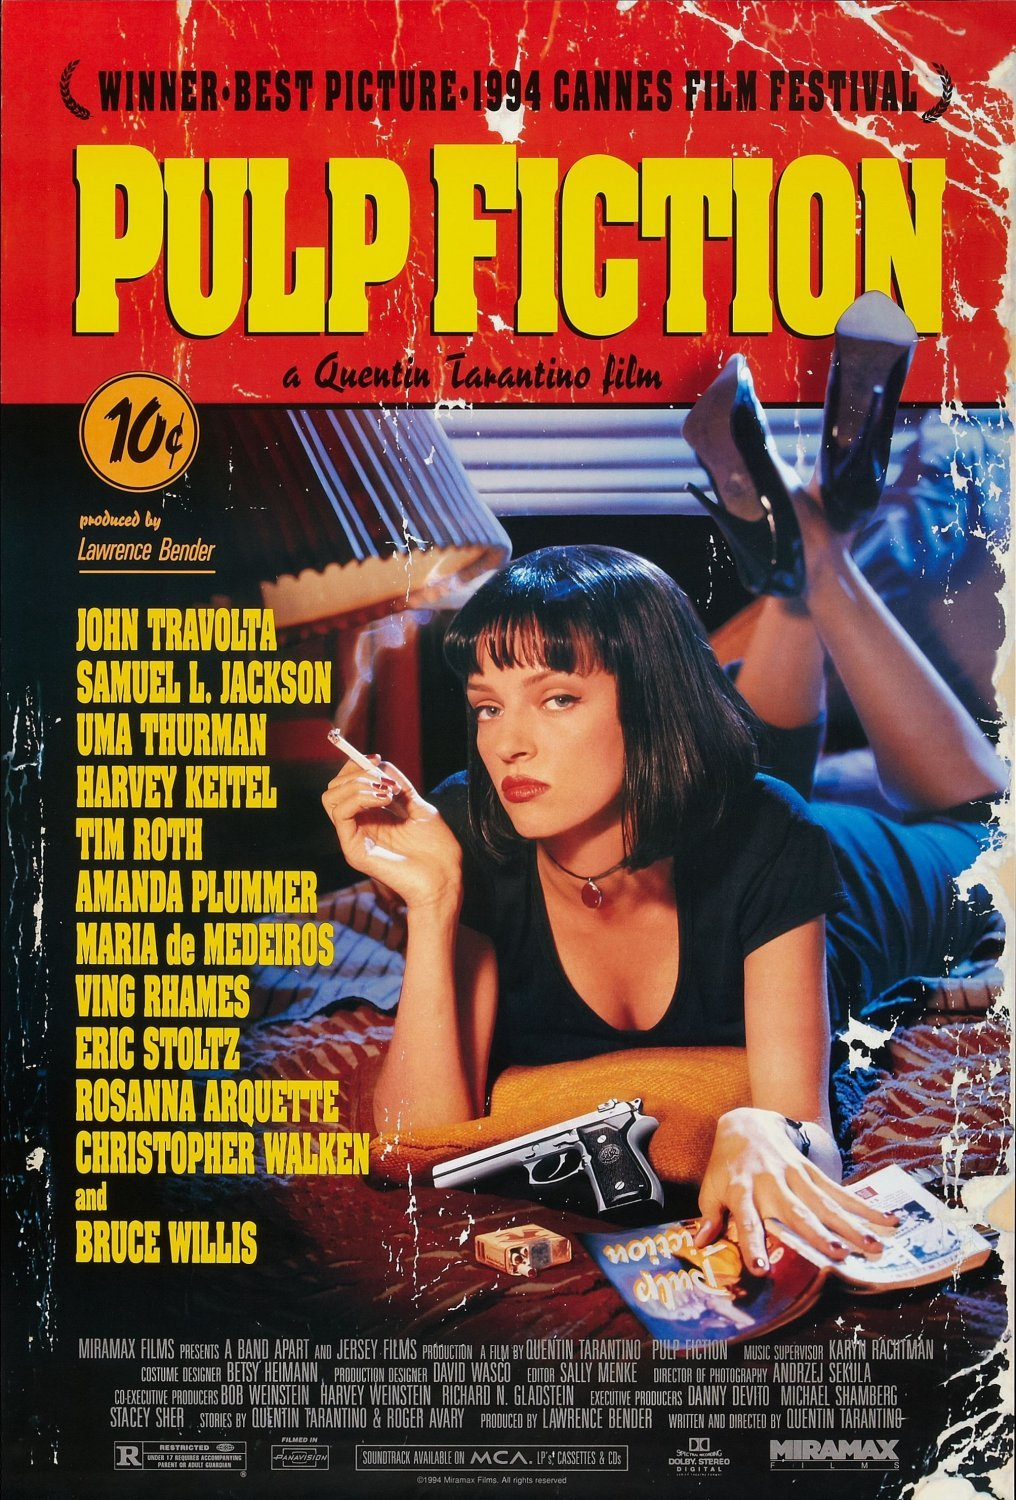 Pulp Fiction  18x28 inches Poster Print